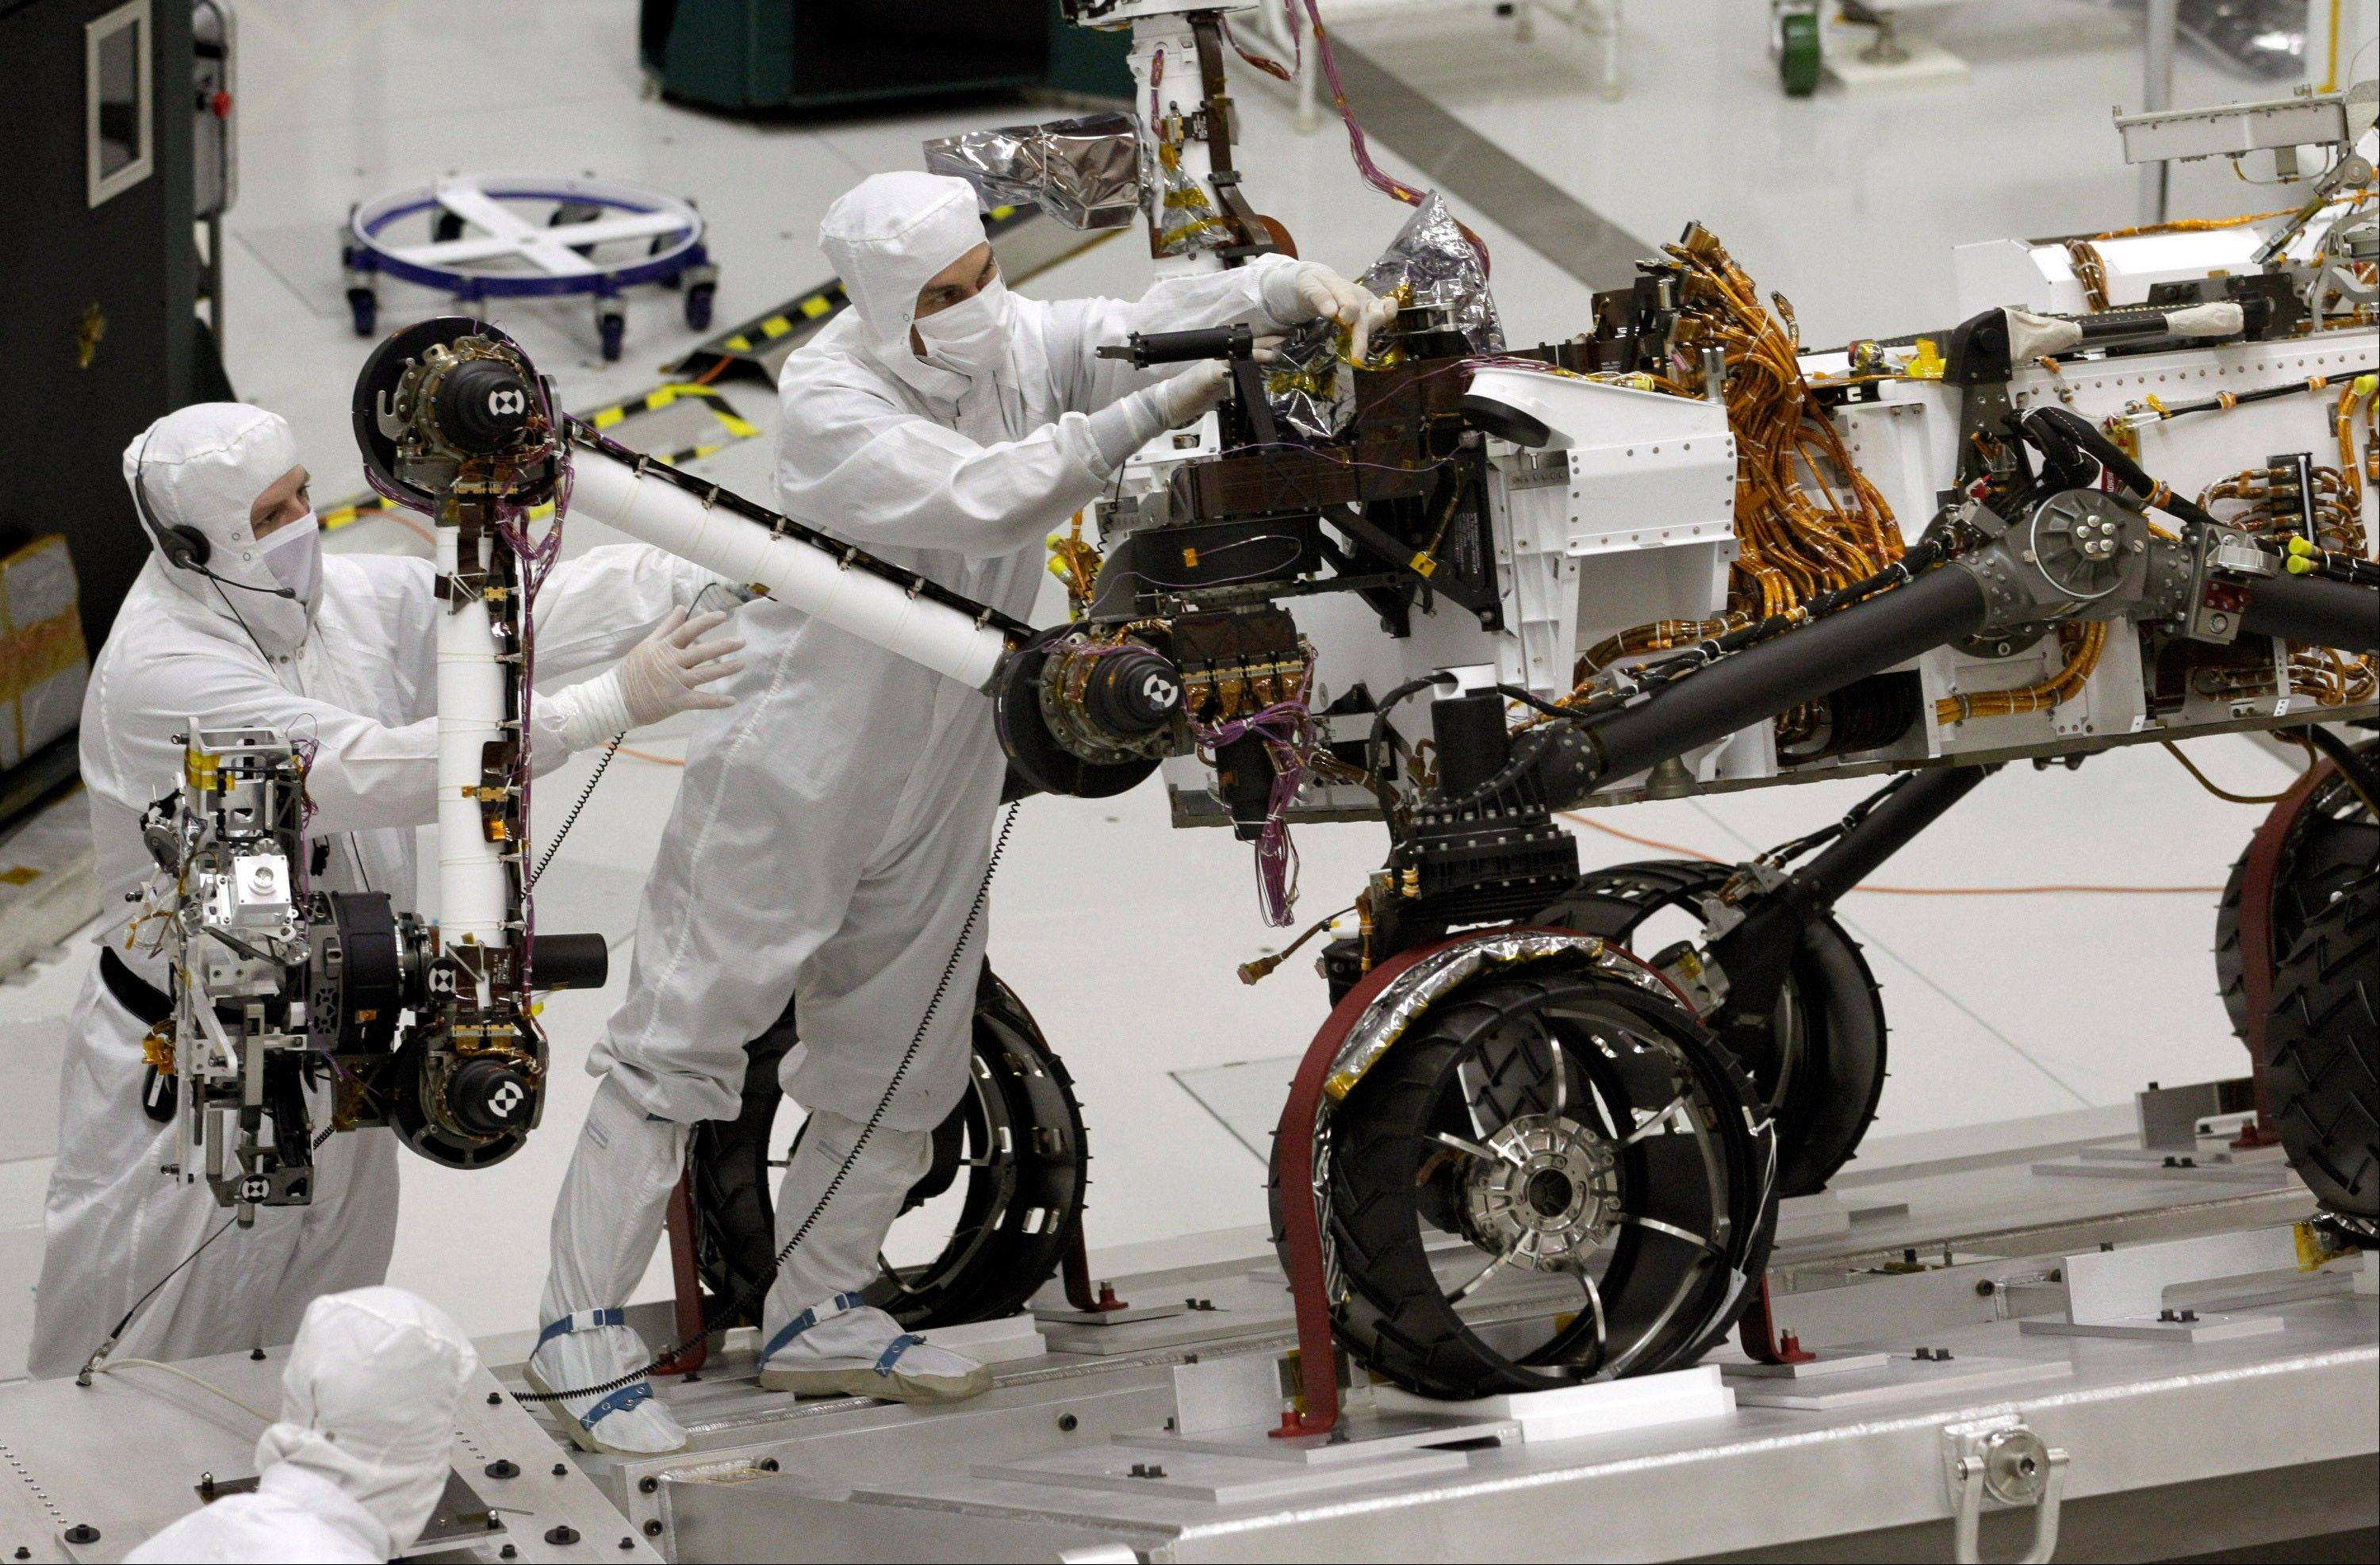 This Sept. 16, 2010 file photo shows engineers working on the Mars rover Curiosity at NASA�s Jet Propulsion Laboratory in Pasadena, Calif. Curiosity celebrated its first year on Mars and is driving toward a mountain in a journey that will take months.